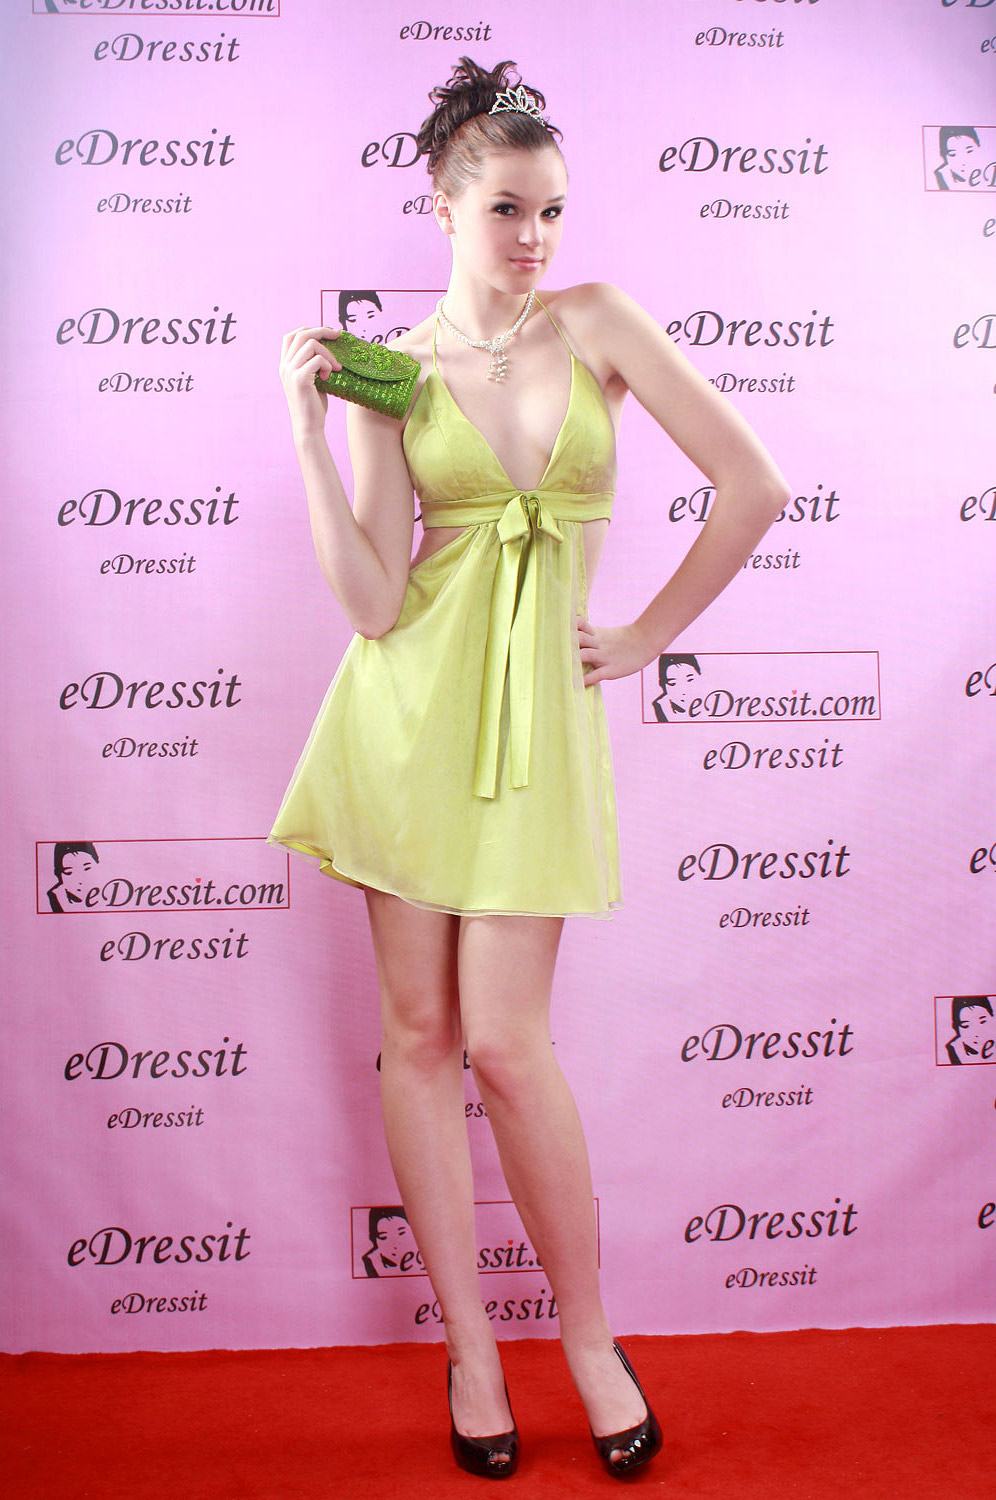 eDressit Sexy Robe de Cocktail (04770504)